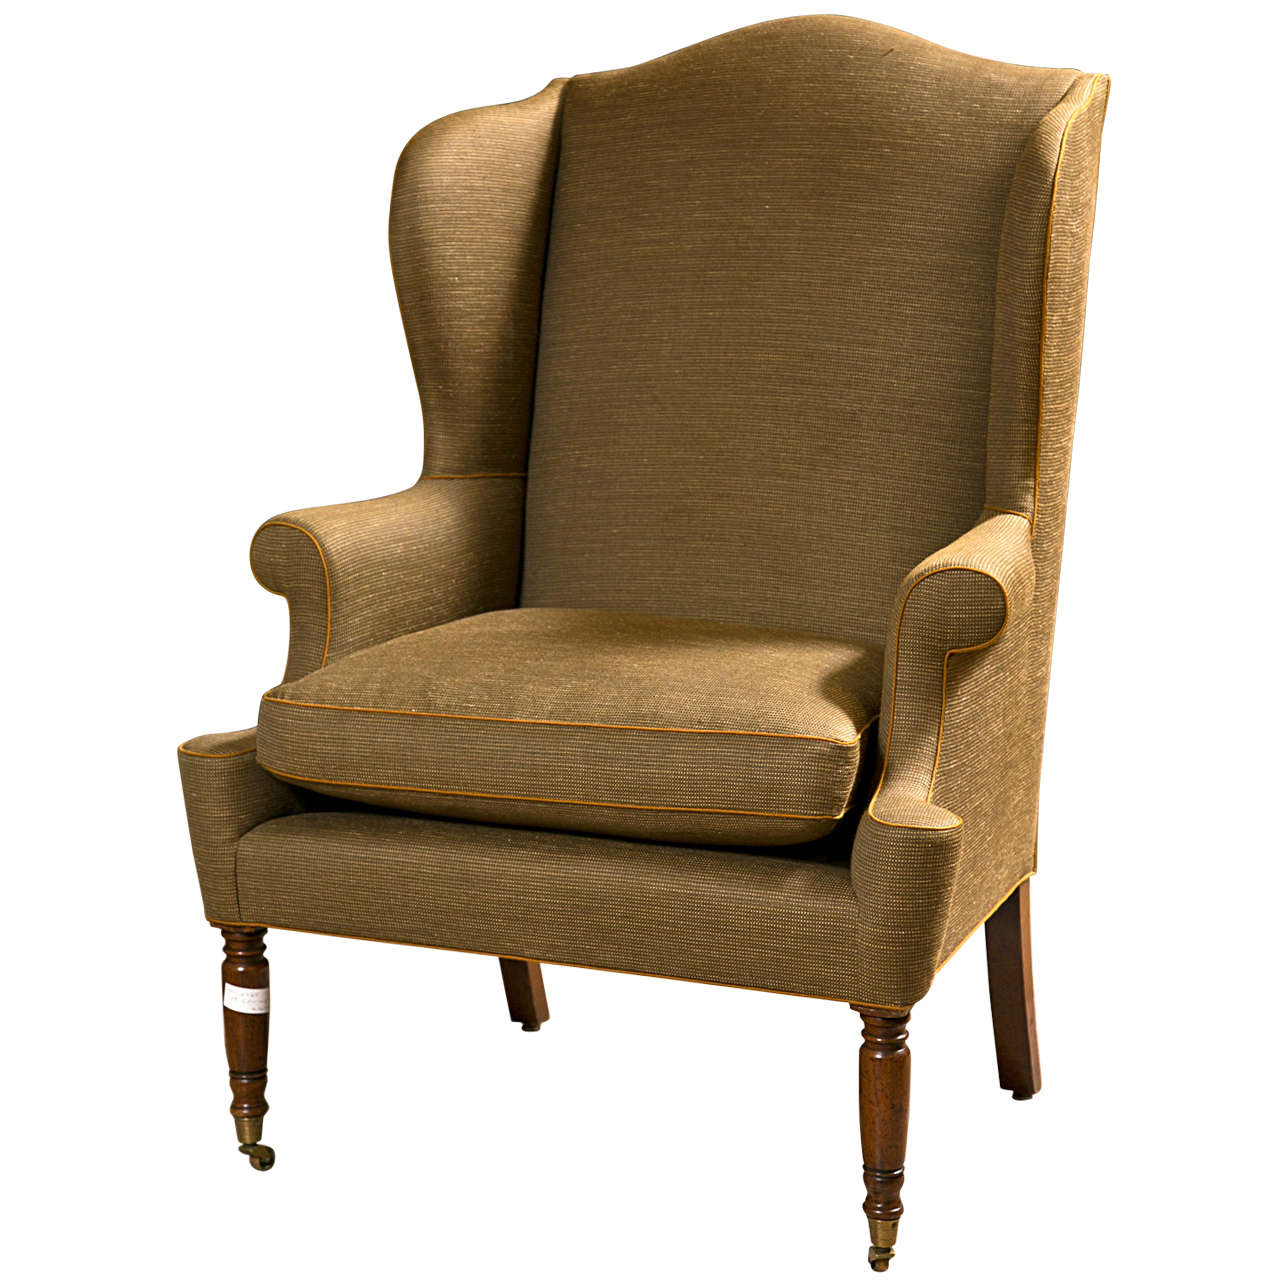 Used Wingback Chairs American Wingback Bergere Chair For Sale At 1stdibs